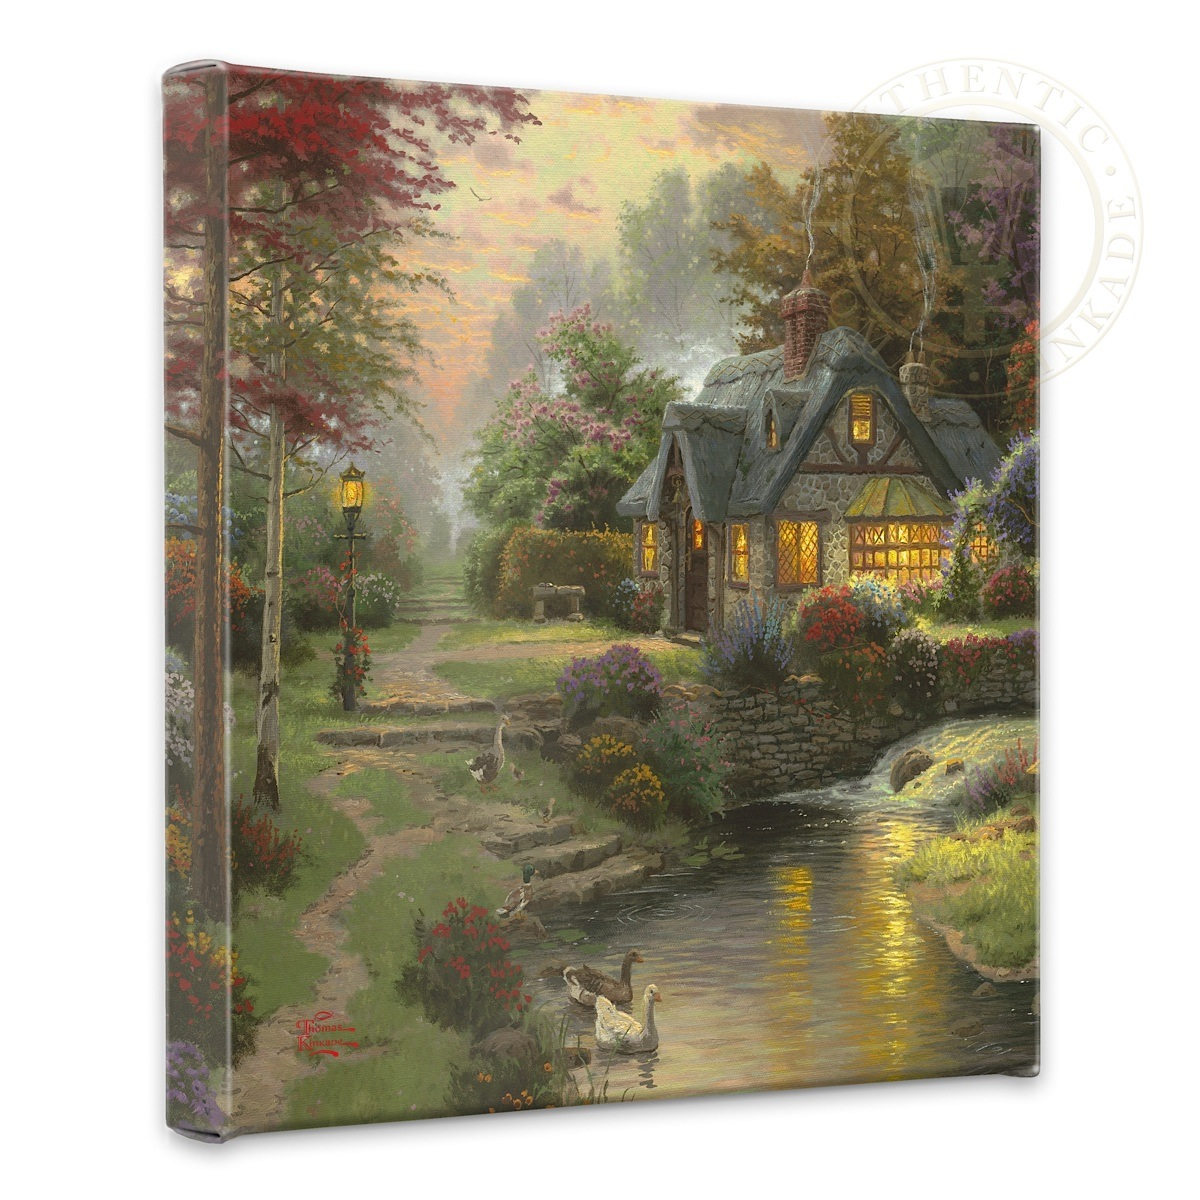 "Stillwater Cottage - 14"" x 14"" Gallery Wrapped Canvas"